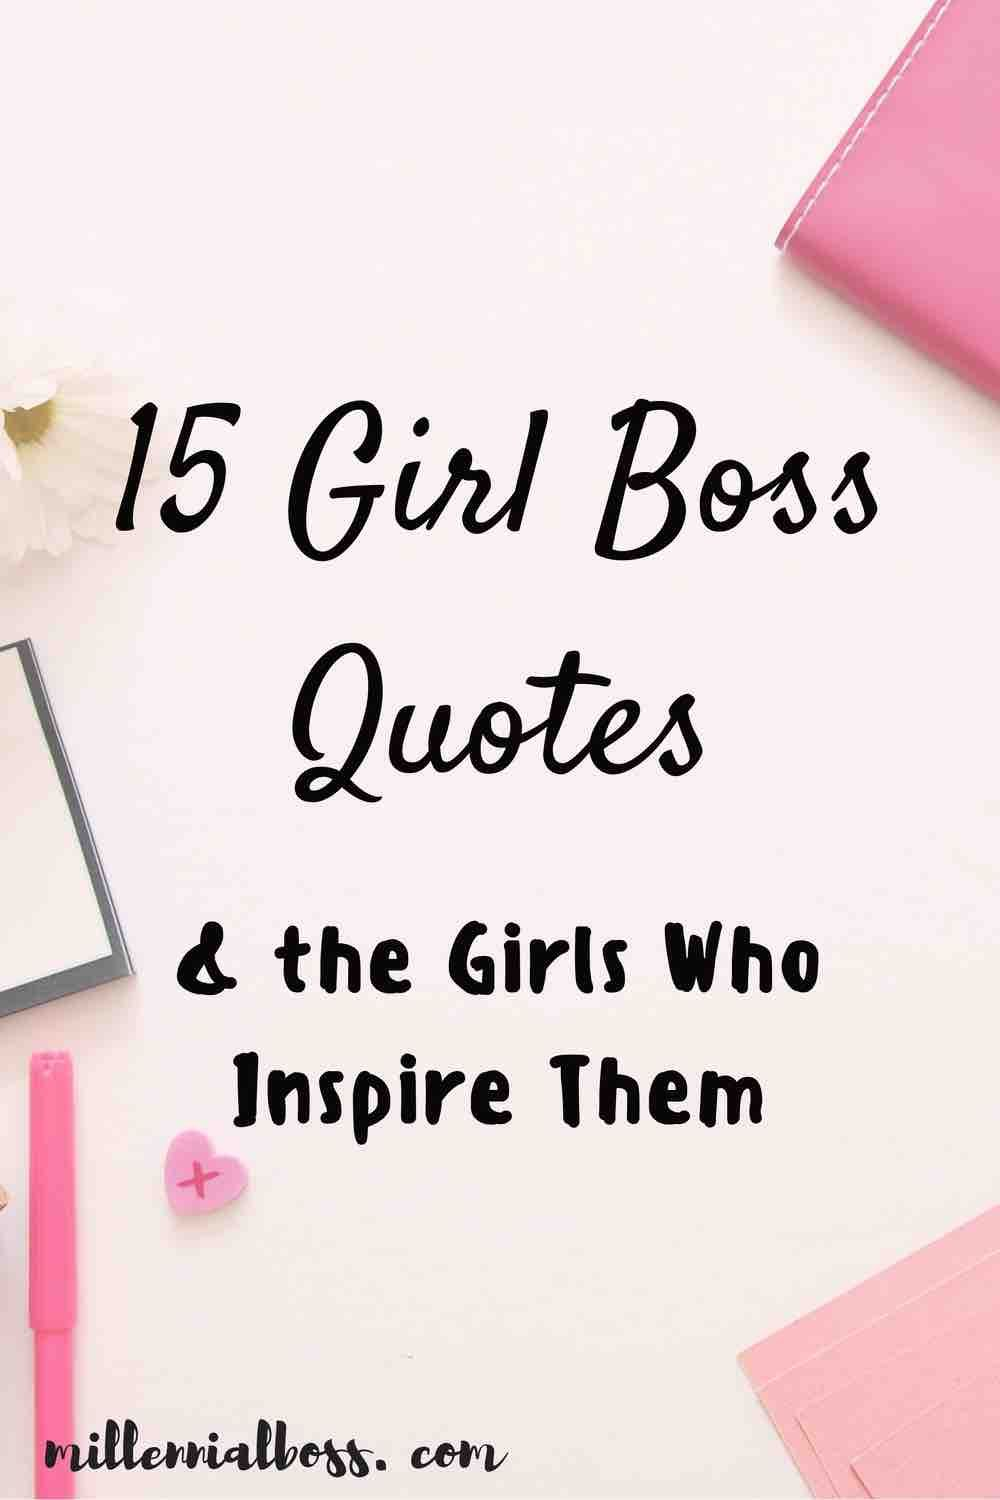 Quotes For Girls 15 Girl Boss Quotes & The Girls Who Inspire Them